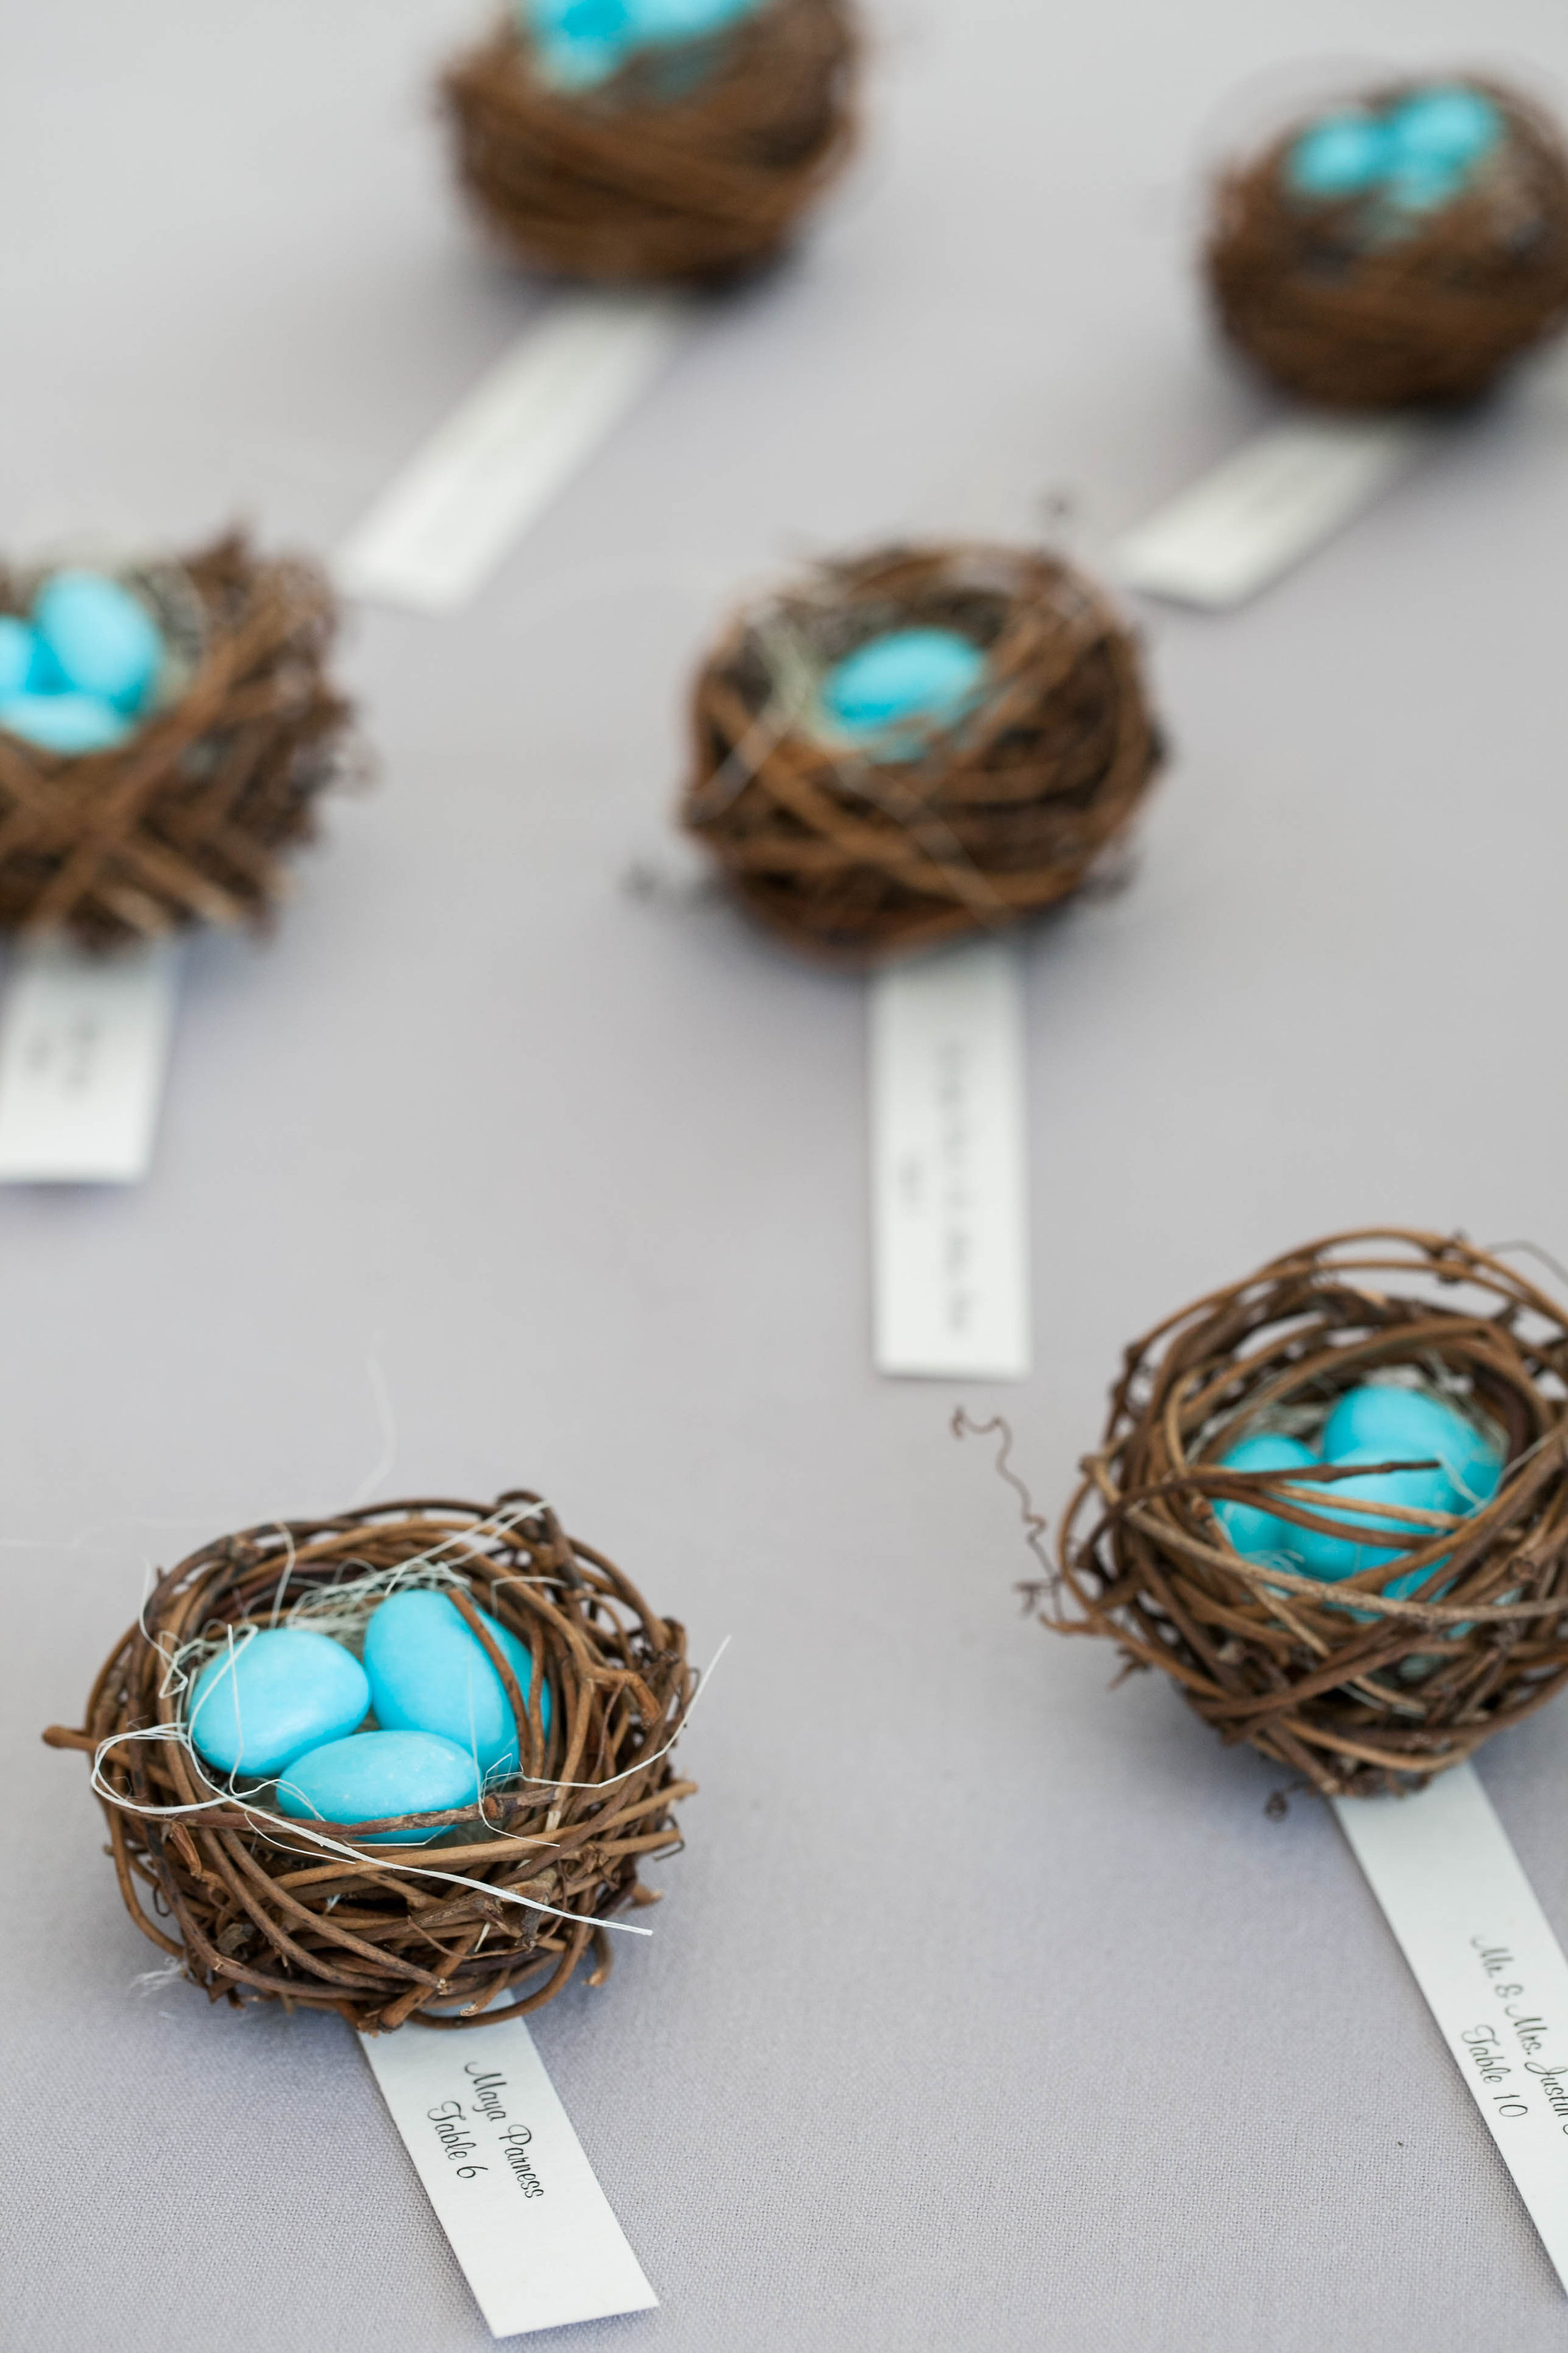 Little nests with Jordan almond eggs